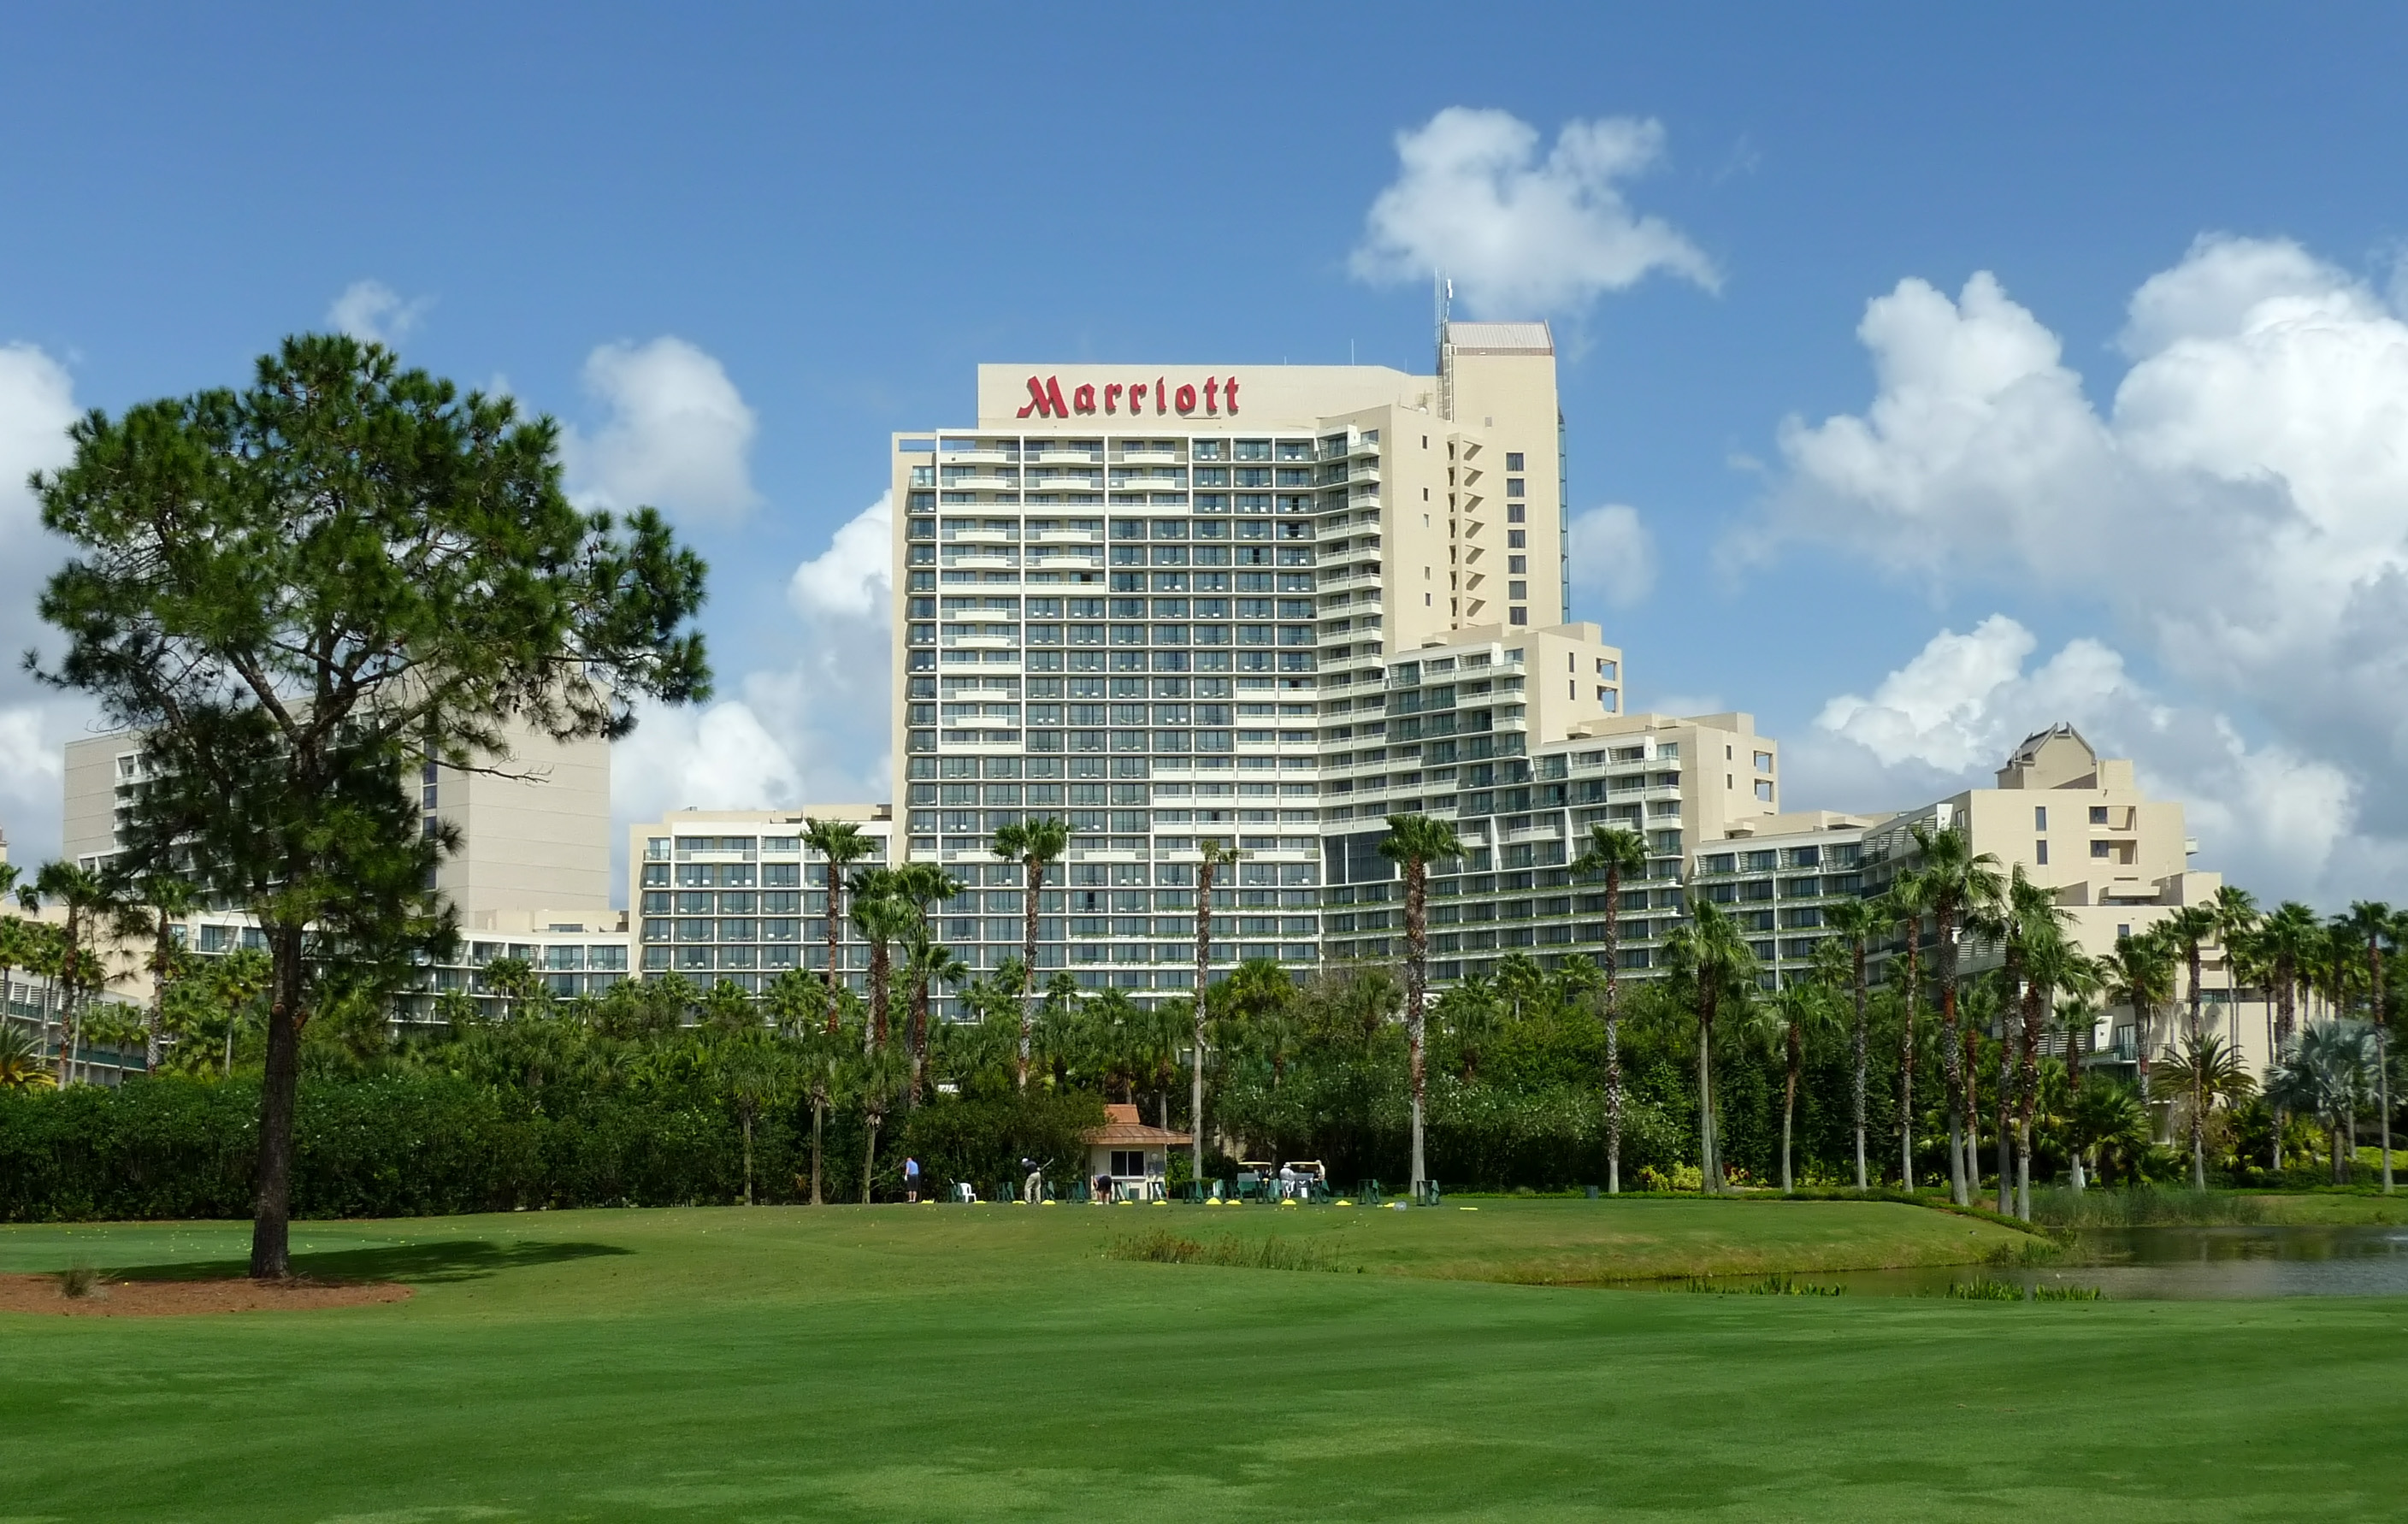 Photo 9 Marriott Orlando World Center